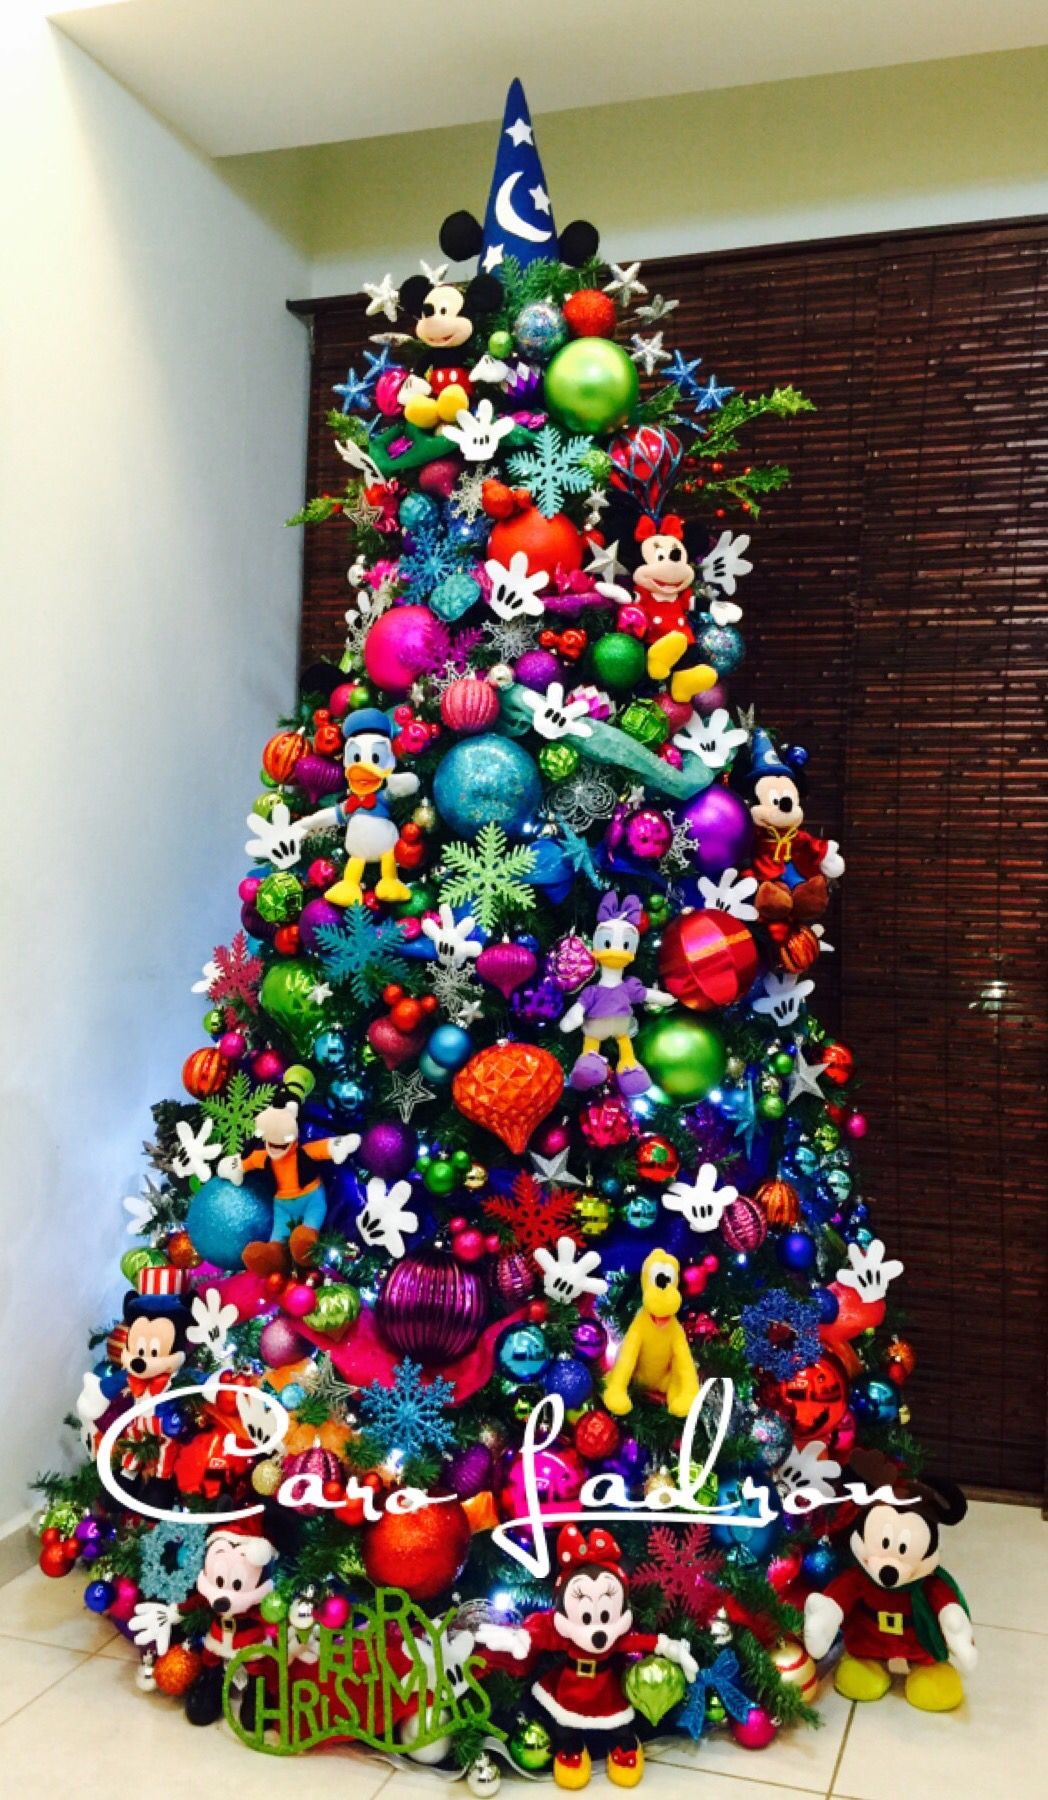 Disney Christmas Decorations.19 Most Creative Kids Christmas Trees M I C K E Y